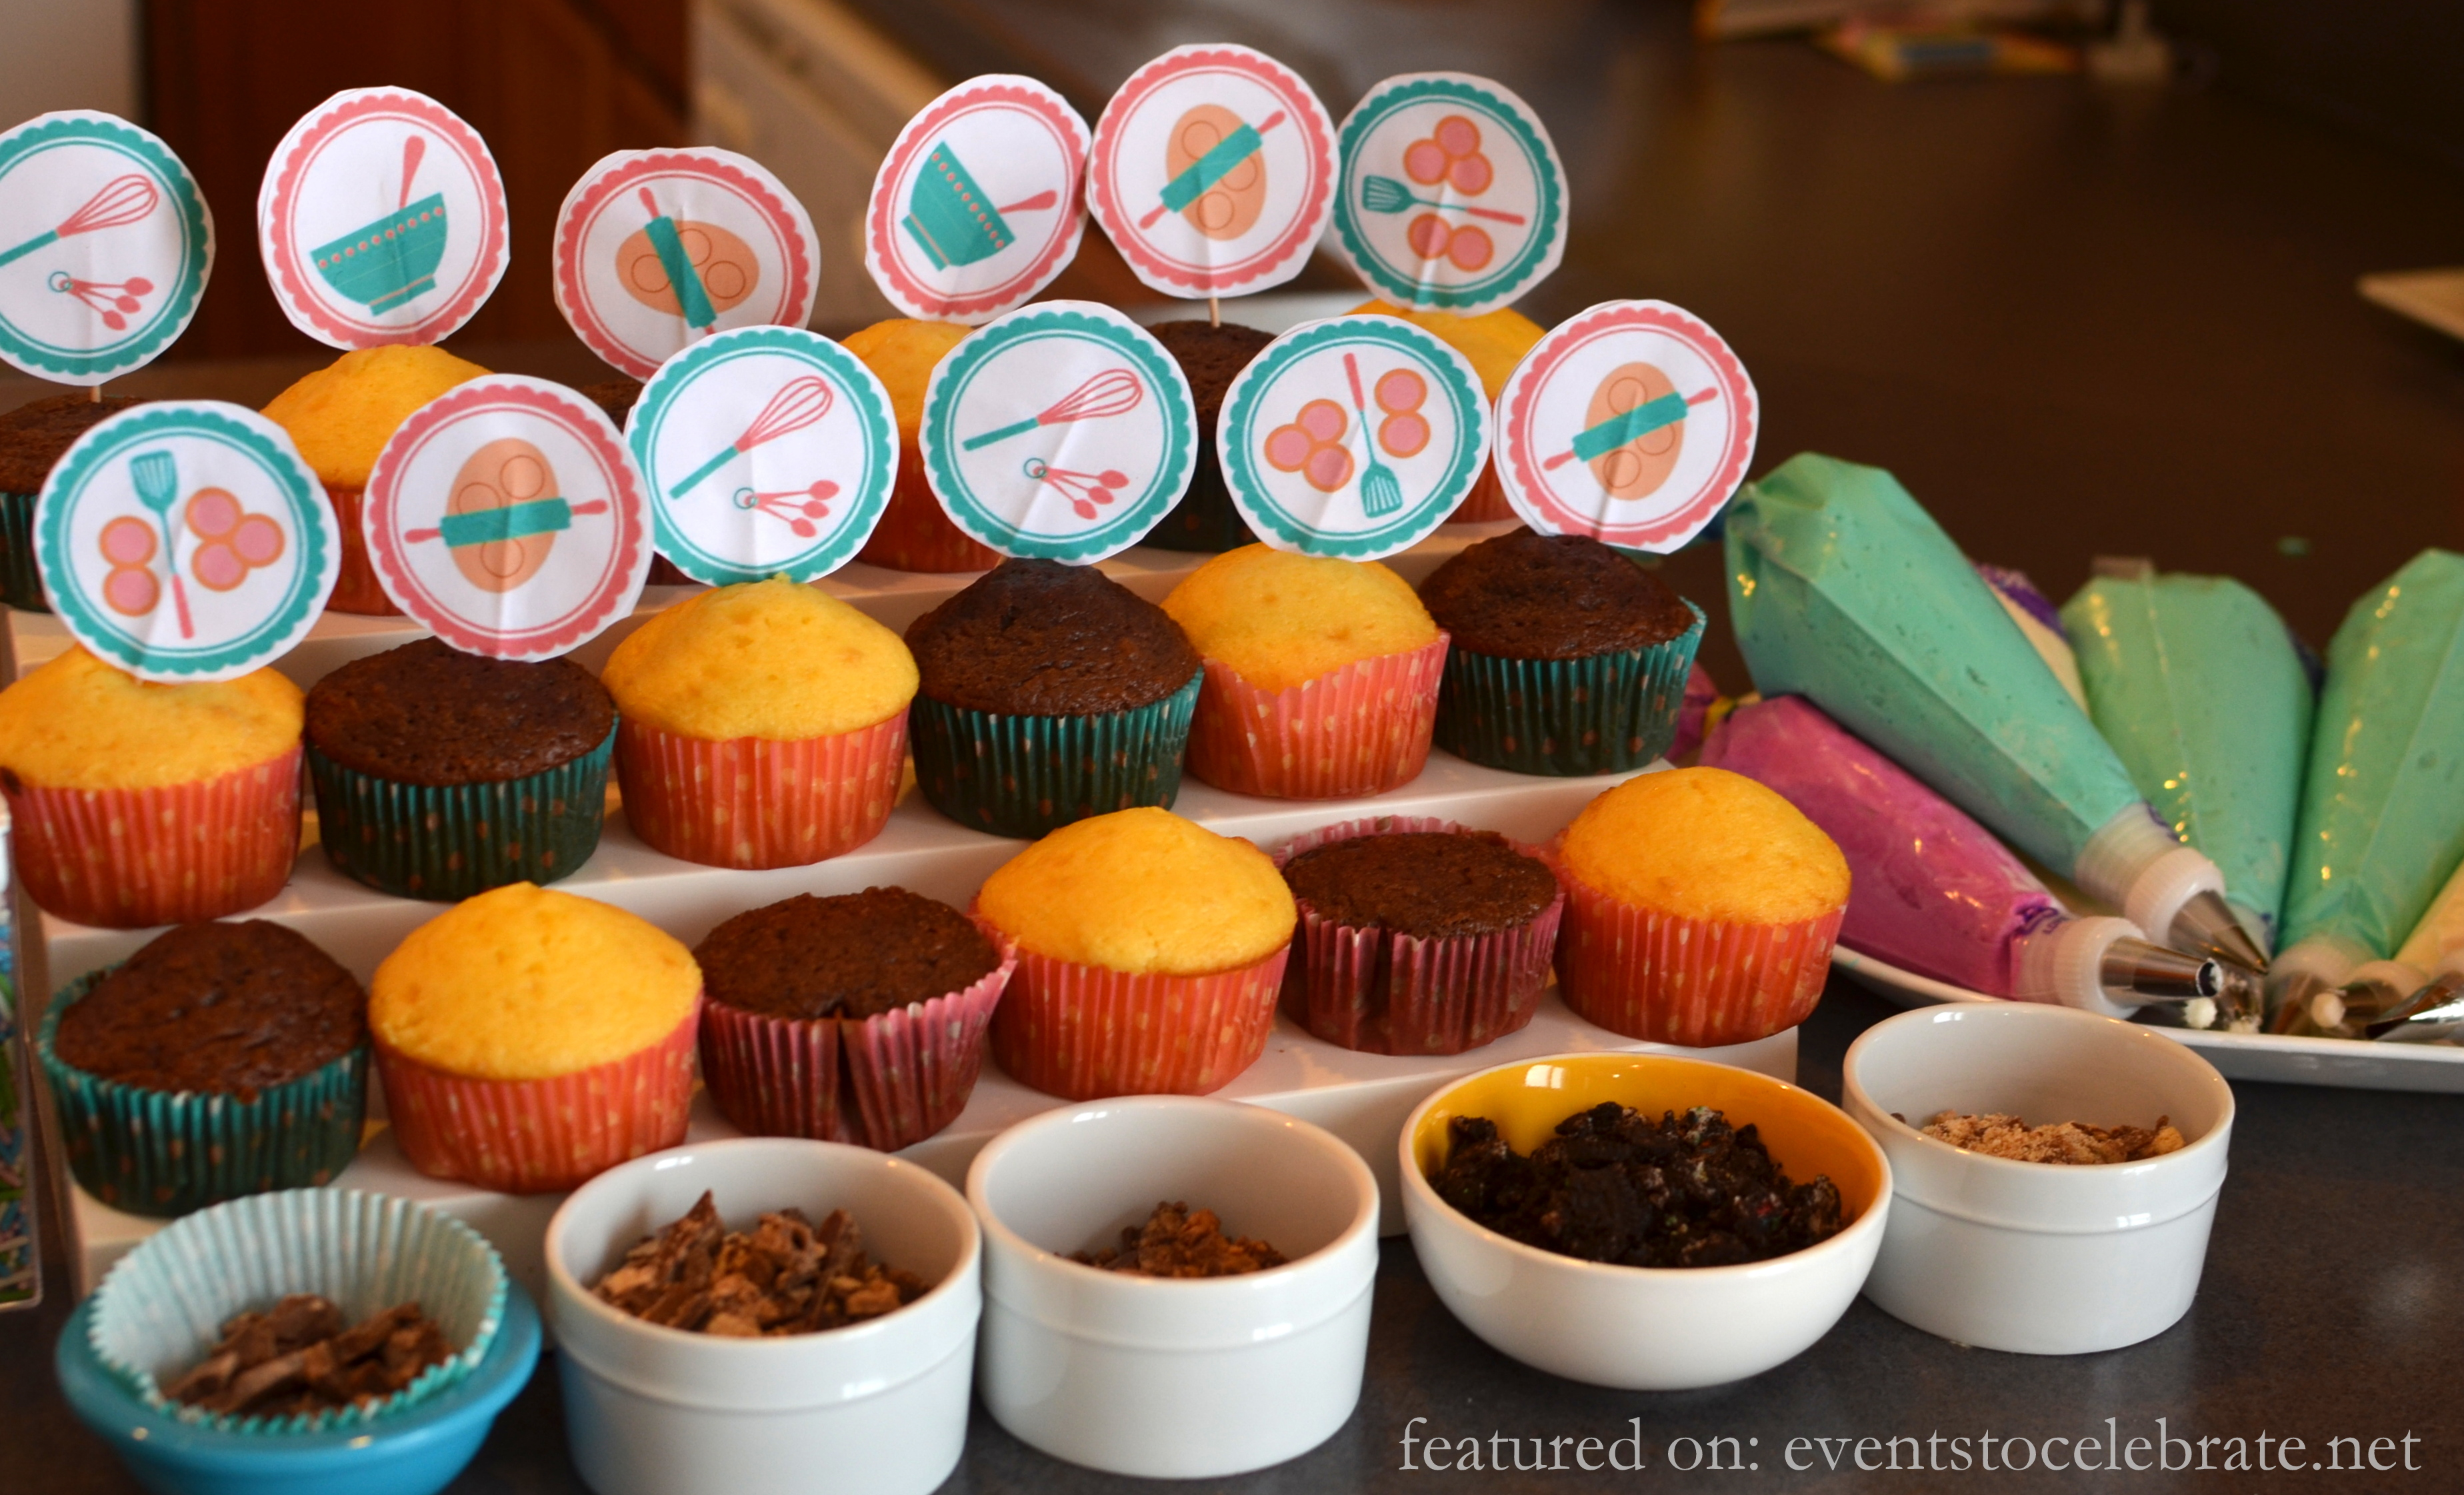 Baking Birthday Party - events to CELEBRATE!